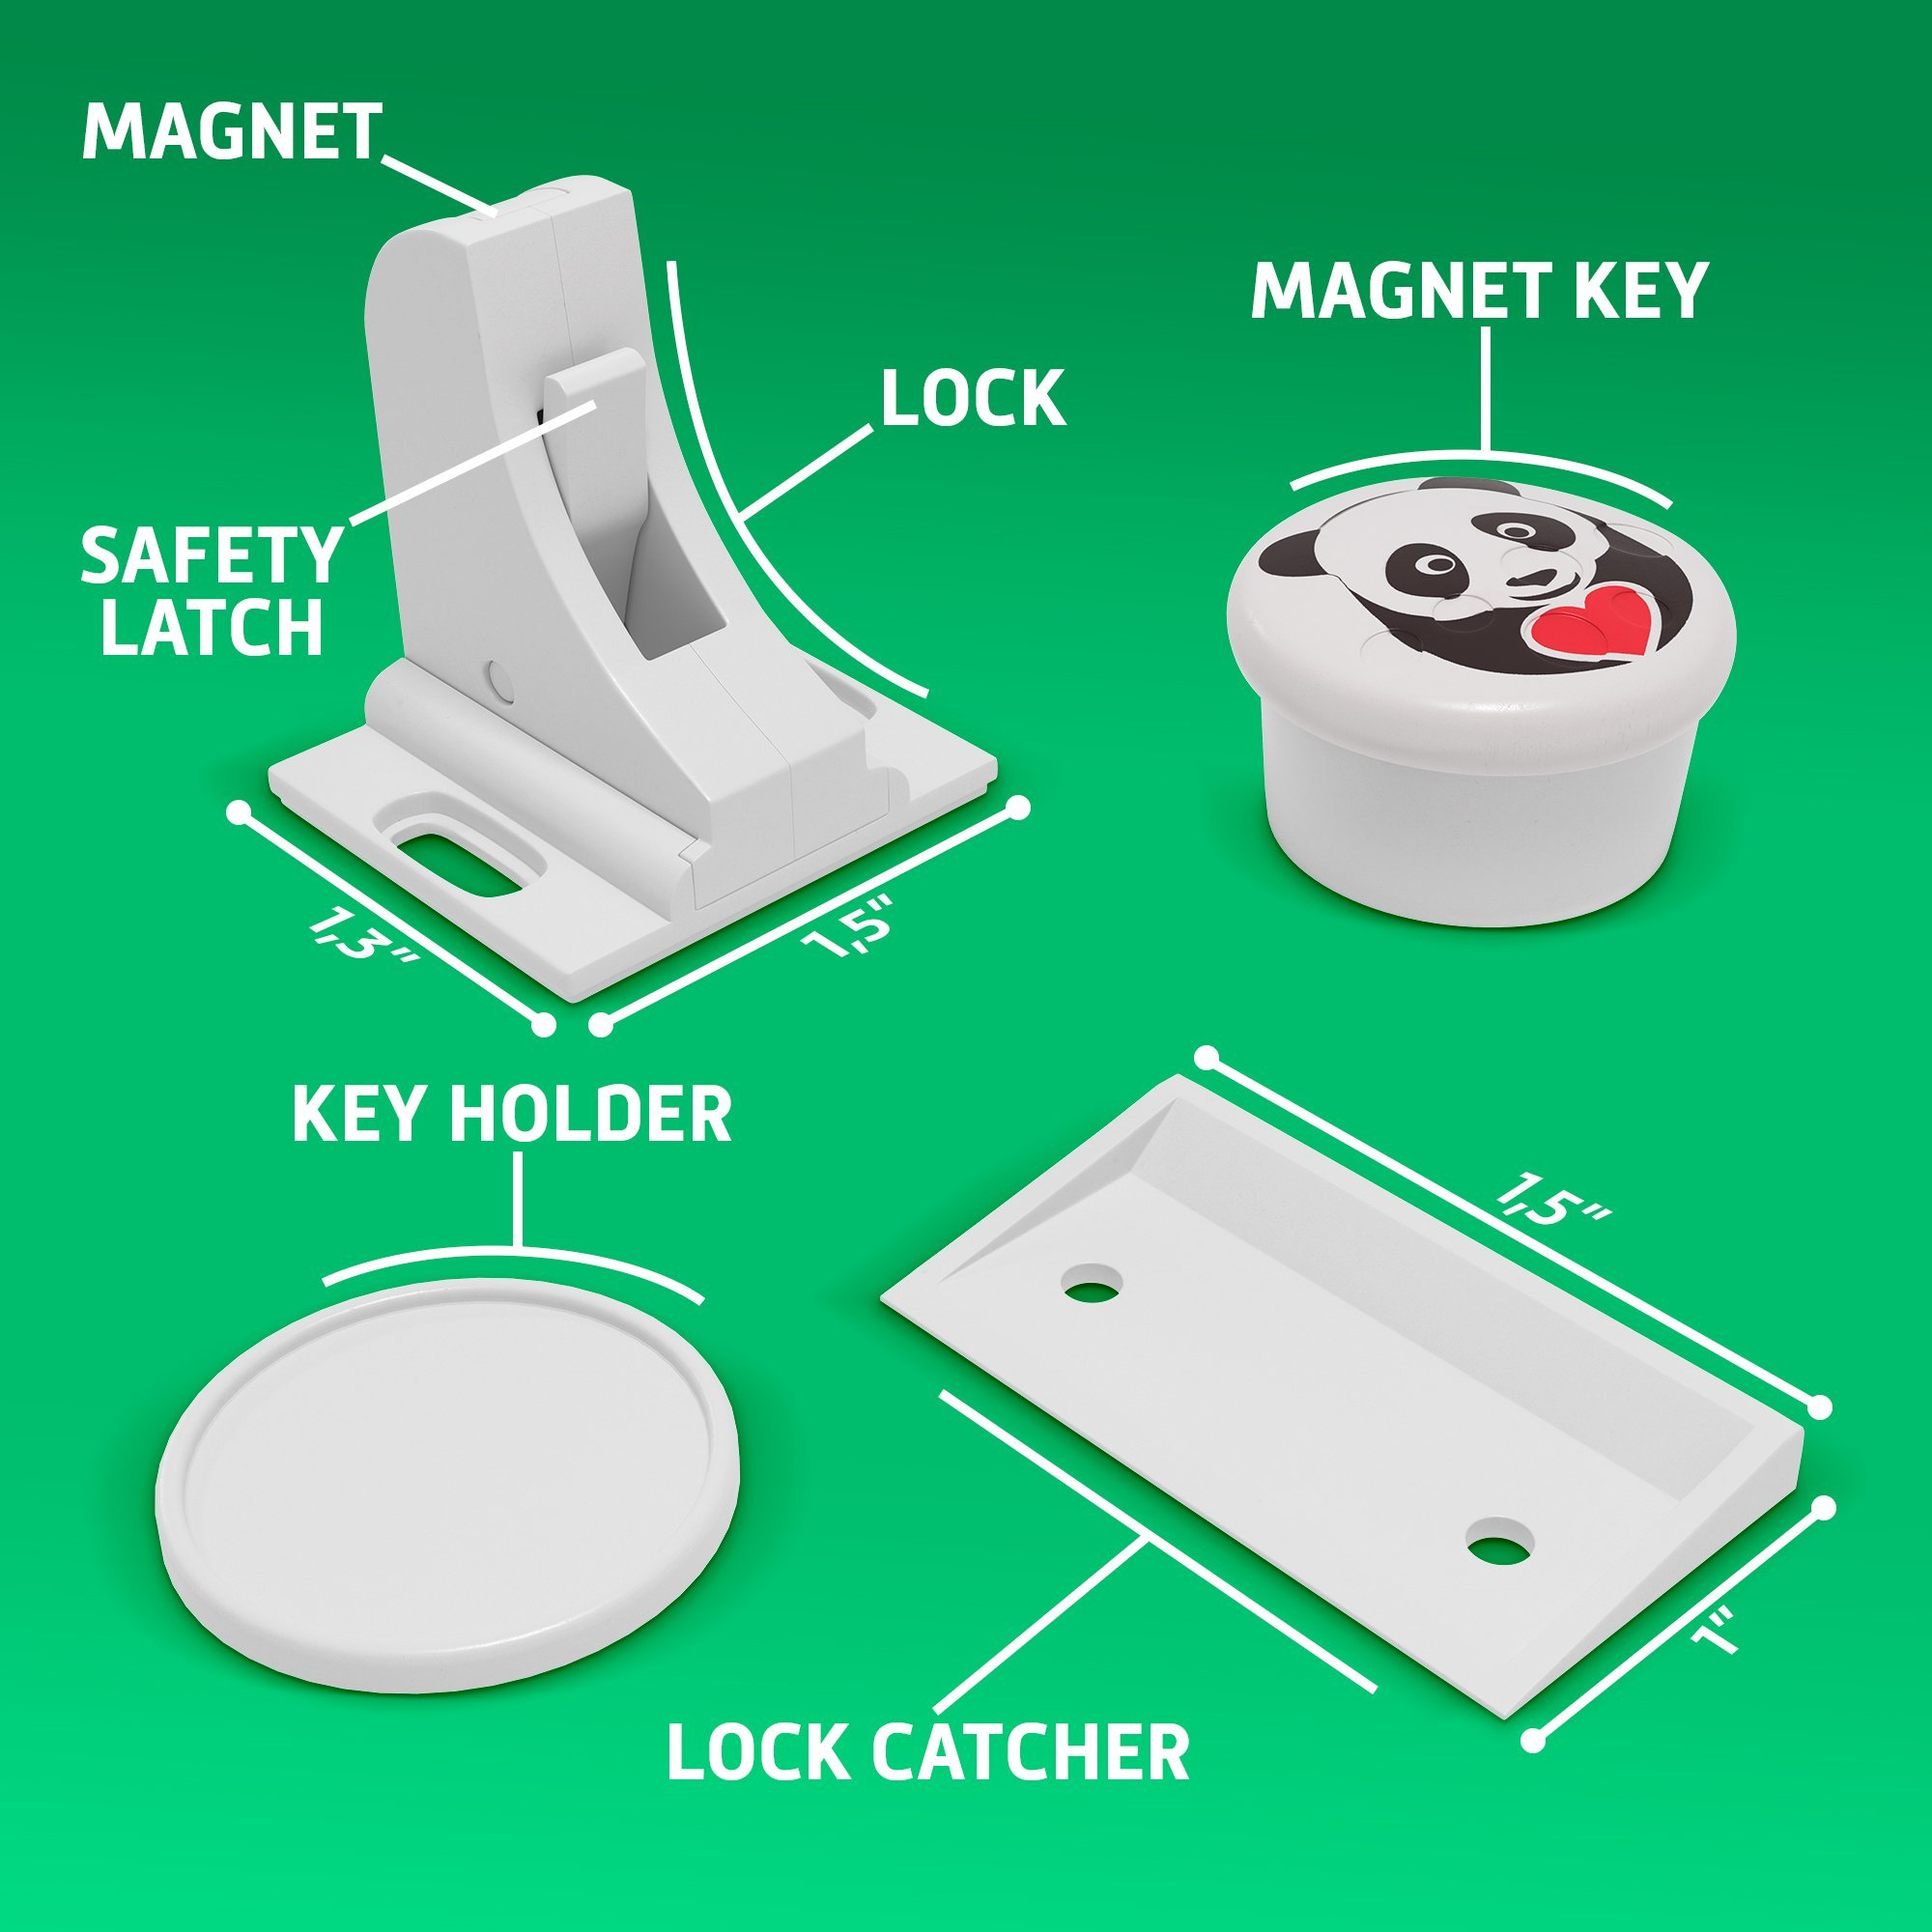 Child Safety Magnetic Cabinet Locks - Invisible Baby Proof Latch Set 8 Locks & 2 Keys Heavy Duty Locking System for Proofing Cabinets Drawers Doors Kitchen with 3M Adhesive (Tools aren't Required) by D-Panda-Safety (Image #4)